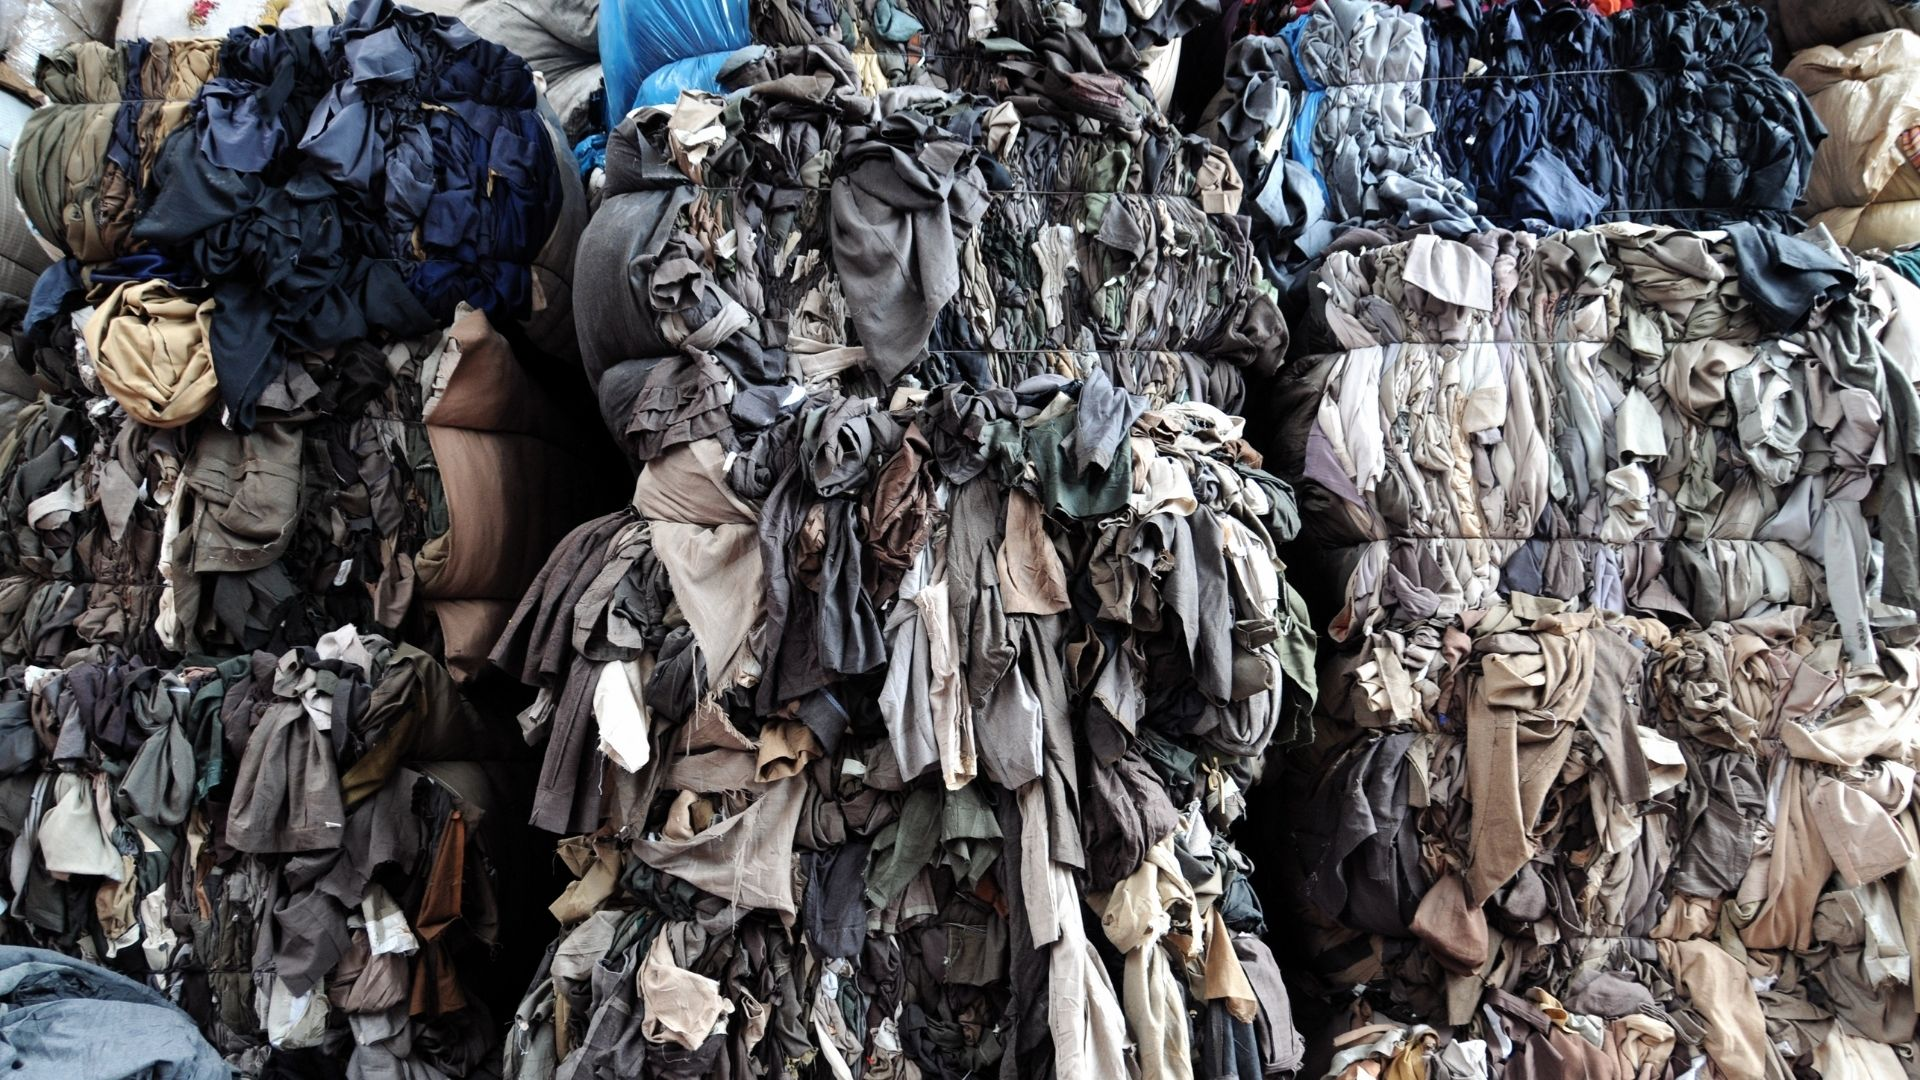 Fashion's deadstock and overproduction